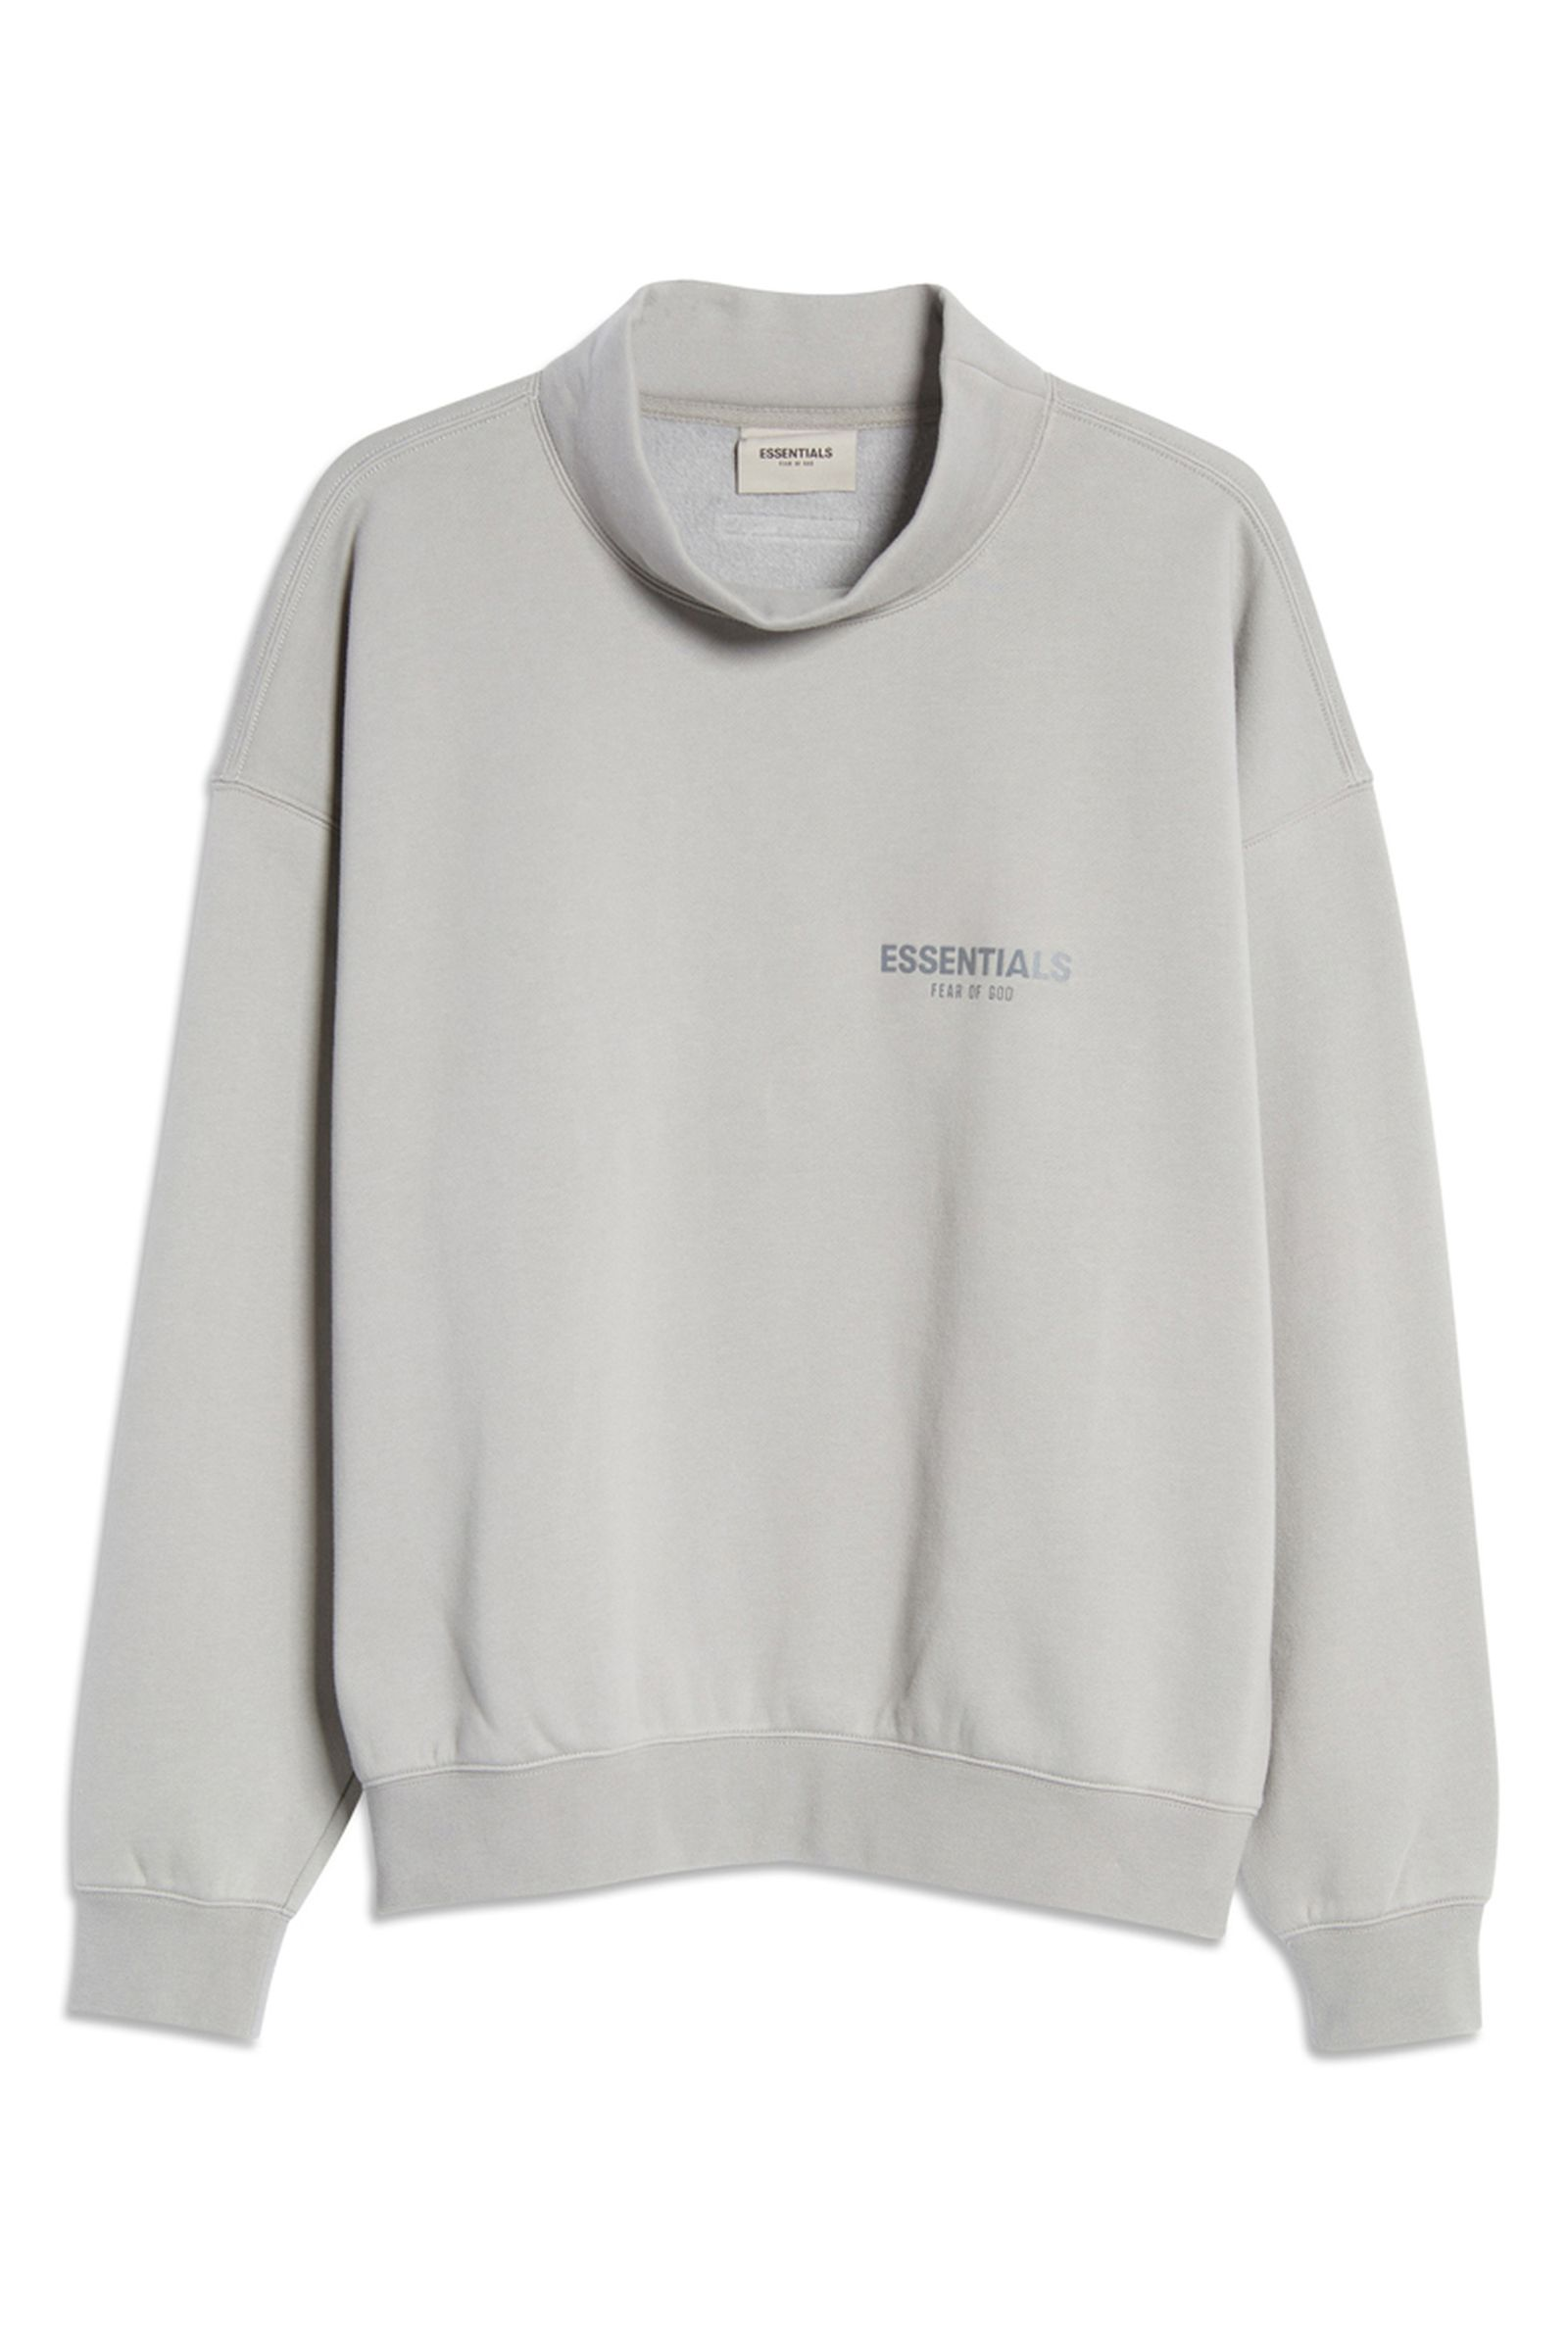 fear of god essentials nordstrom exclusive (12)